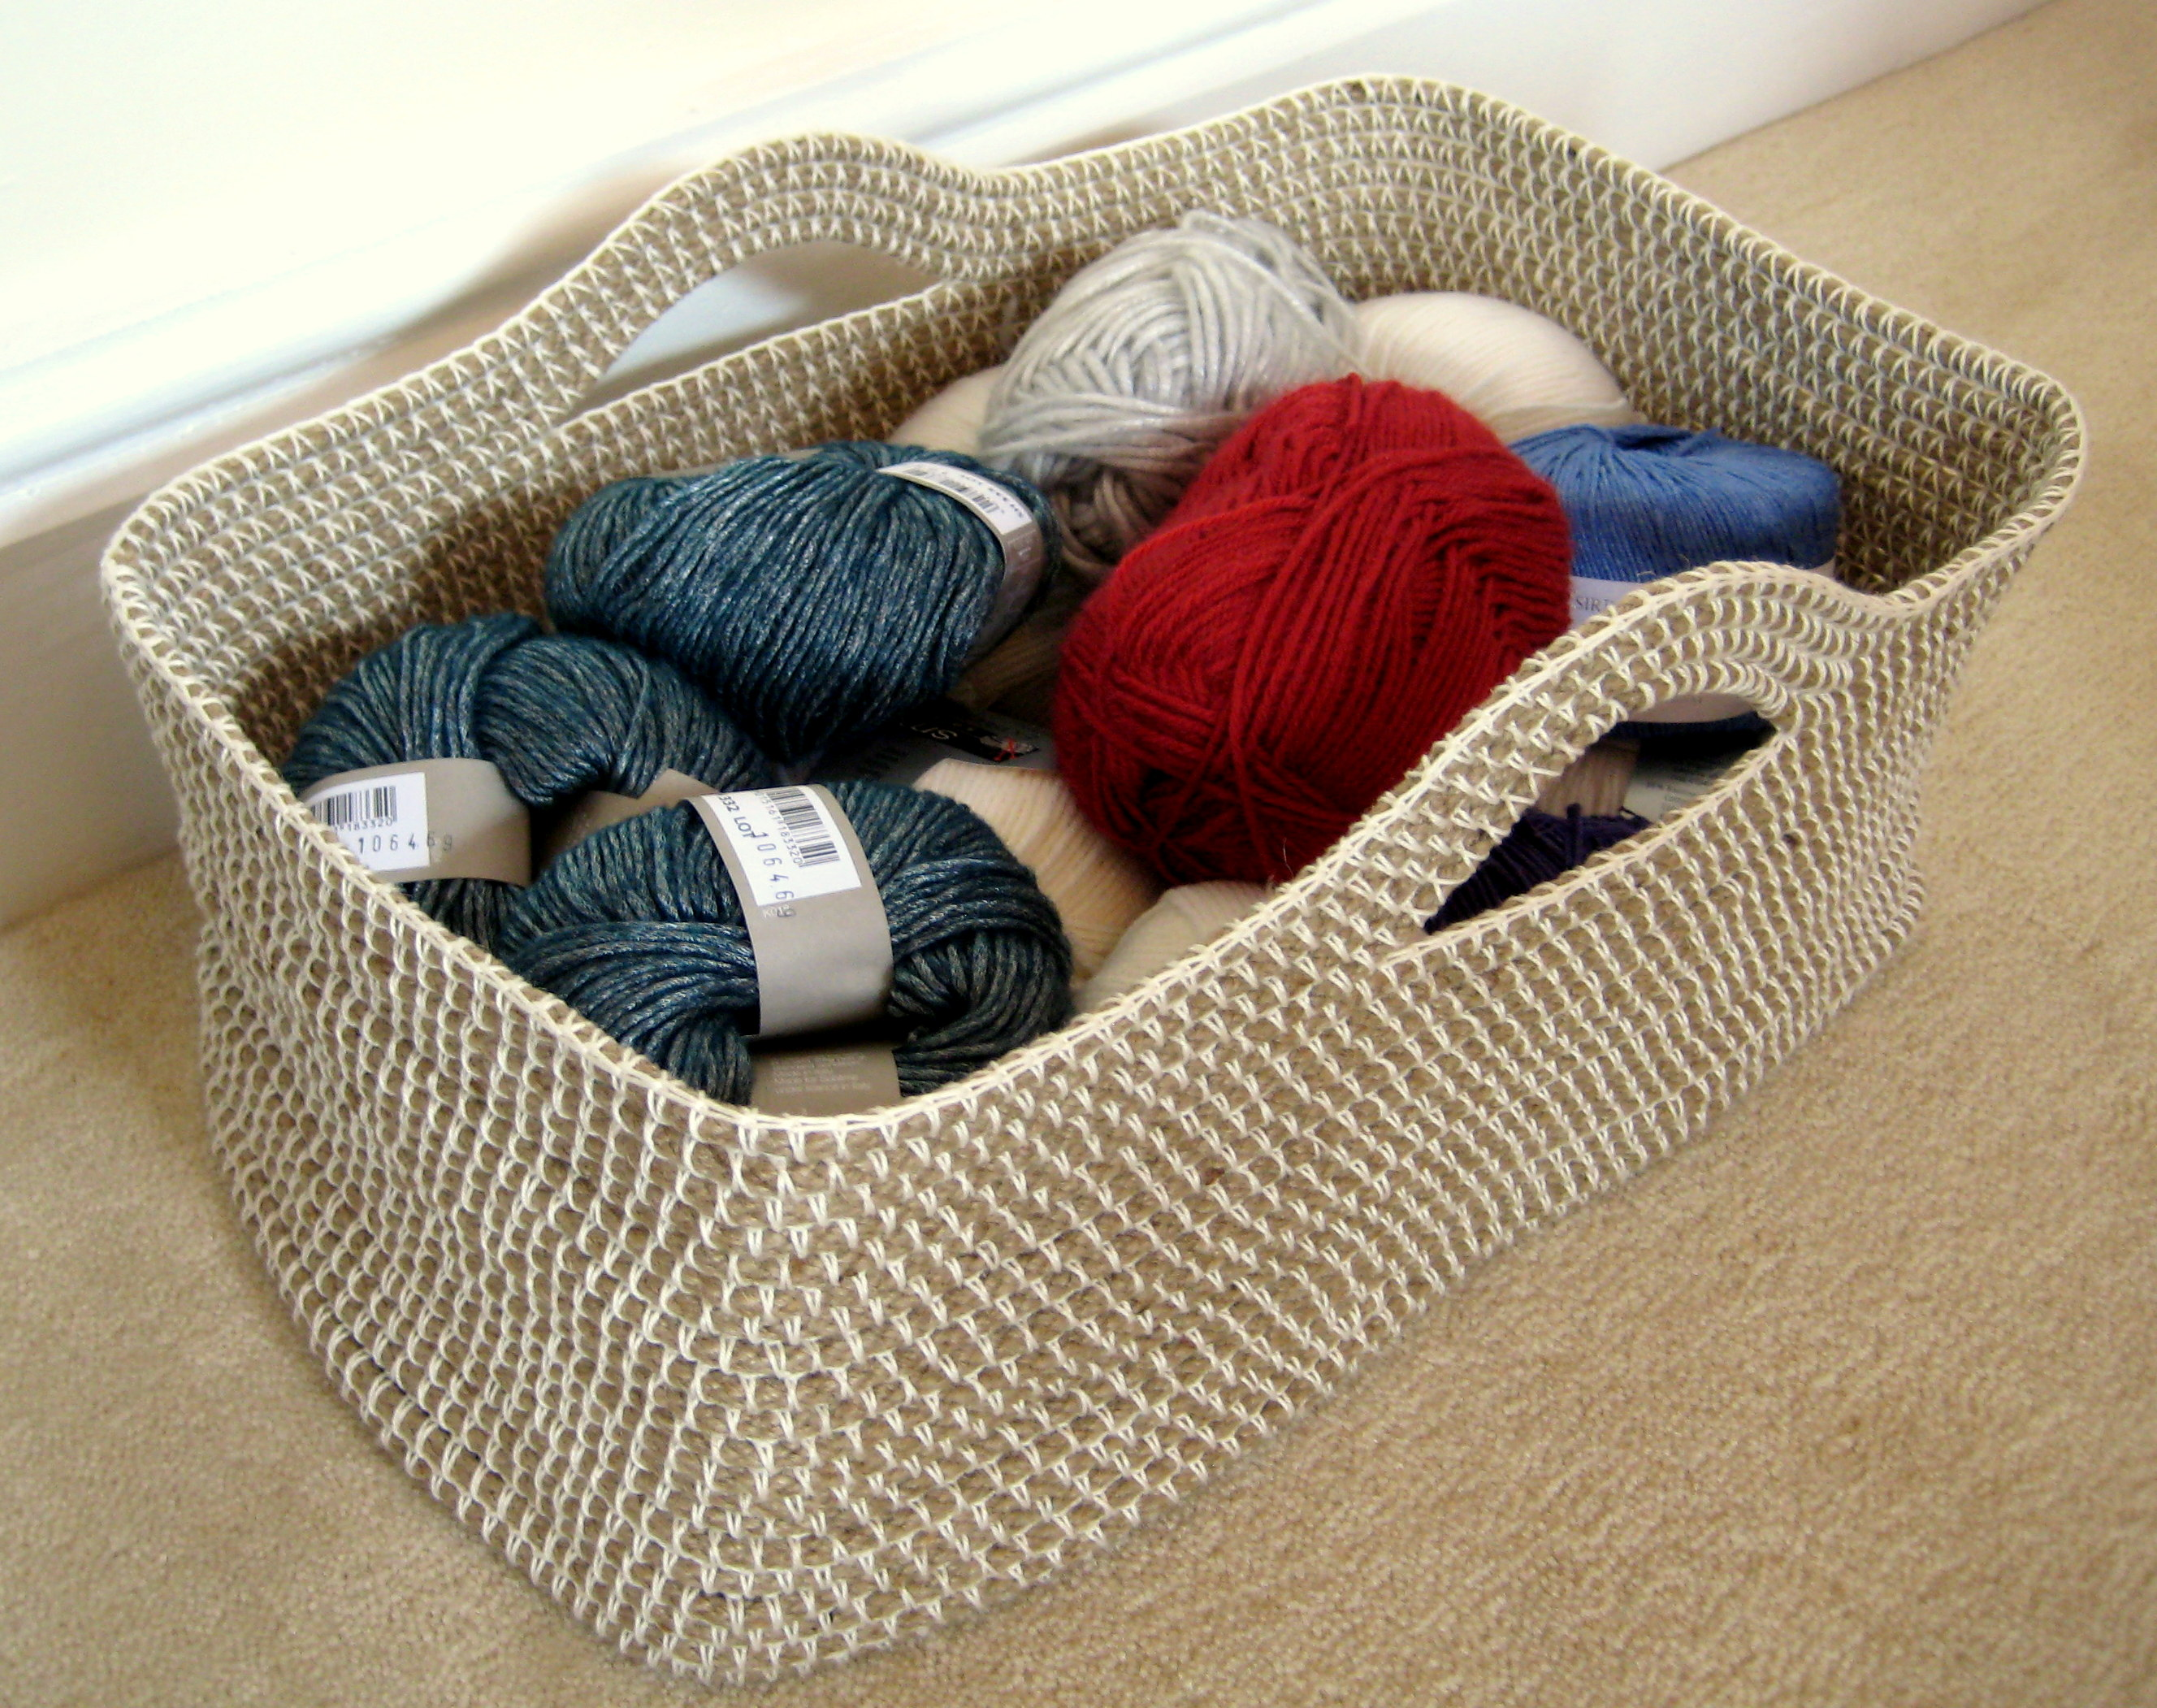 Crochet Stitches Basket : Crochet Rope Basket Make My Day Creative